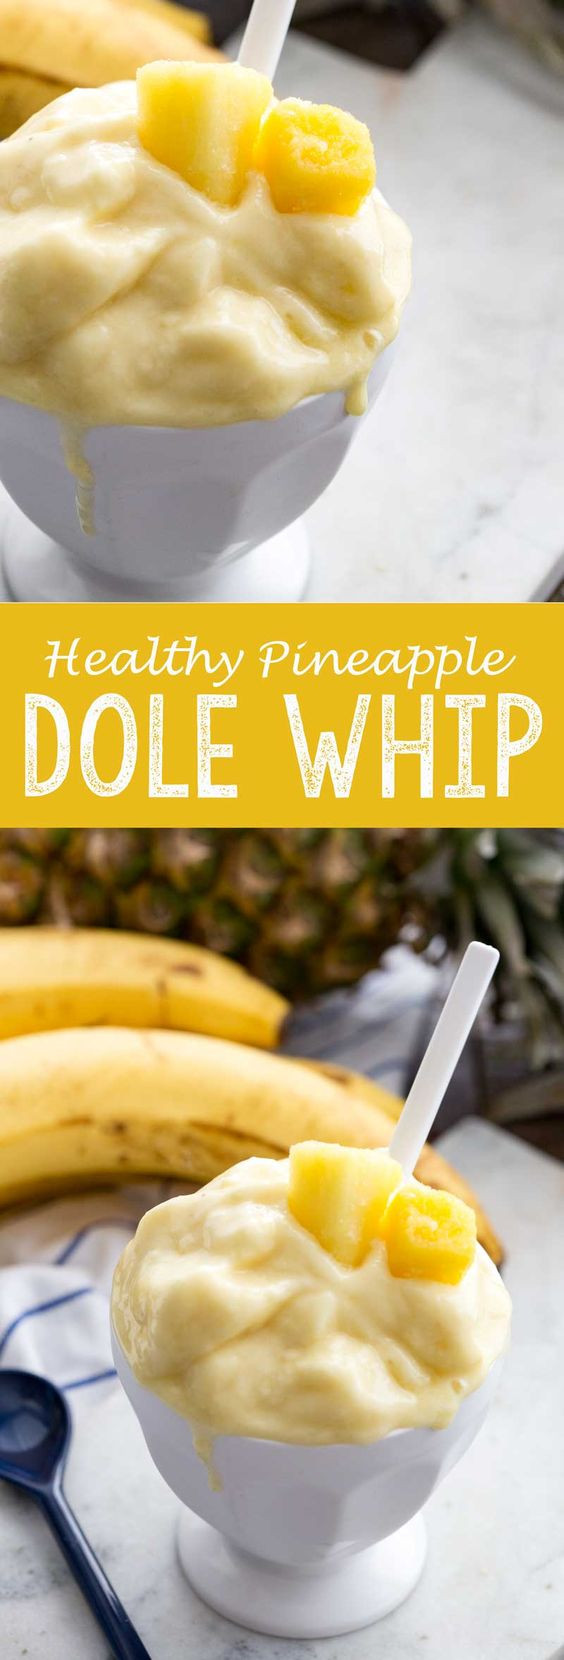 Pineapple Desserts Healthy  Healthy Pineapple Dole Whip Recipe